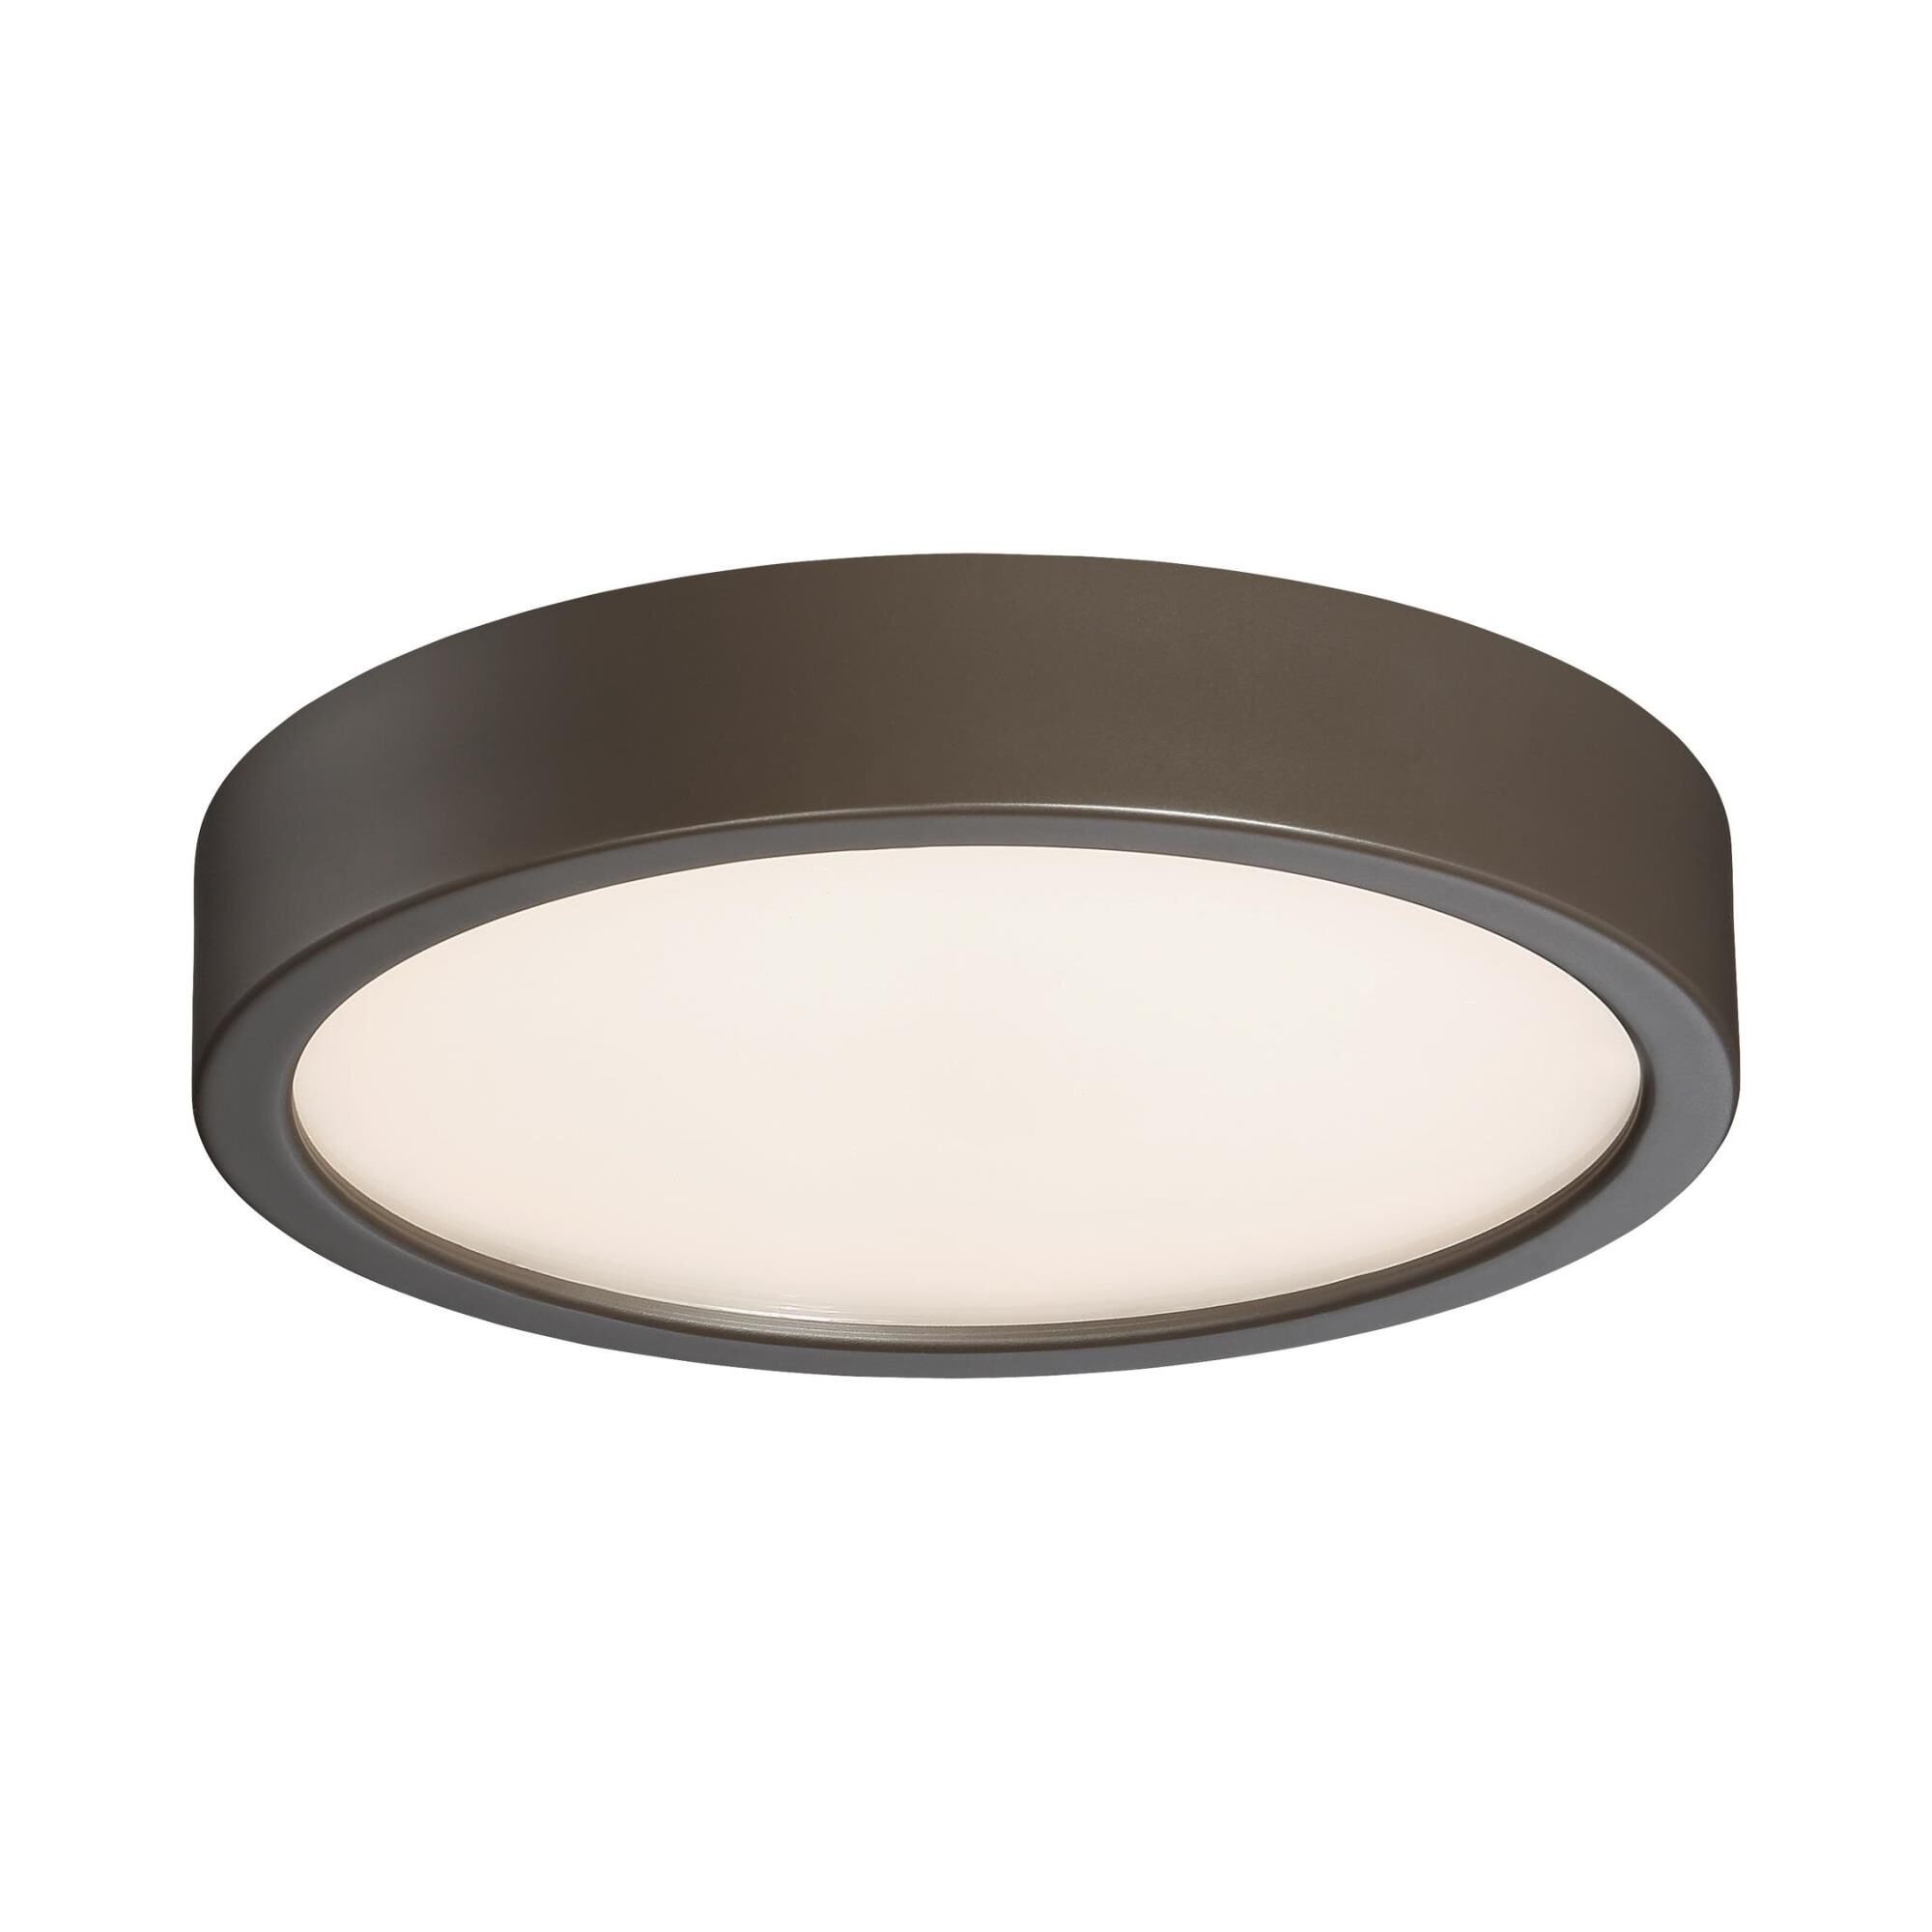 Kovacs 8 Inch 1 Light Led Flush Mount - P841-647b-l - Transitional